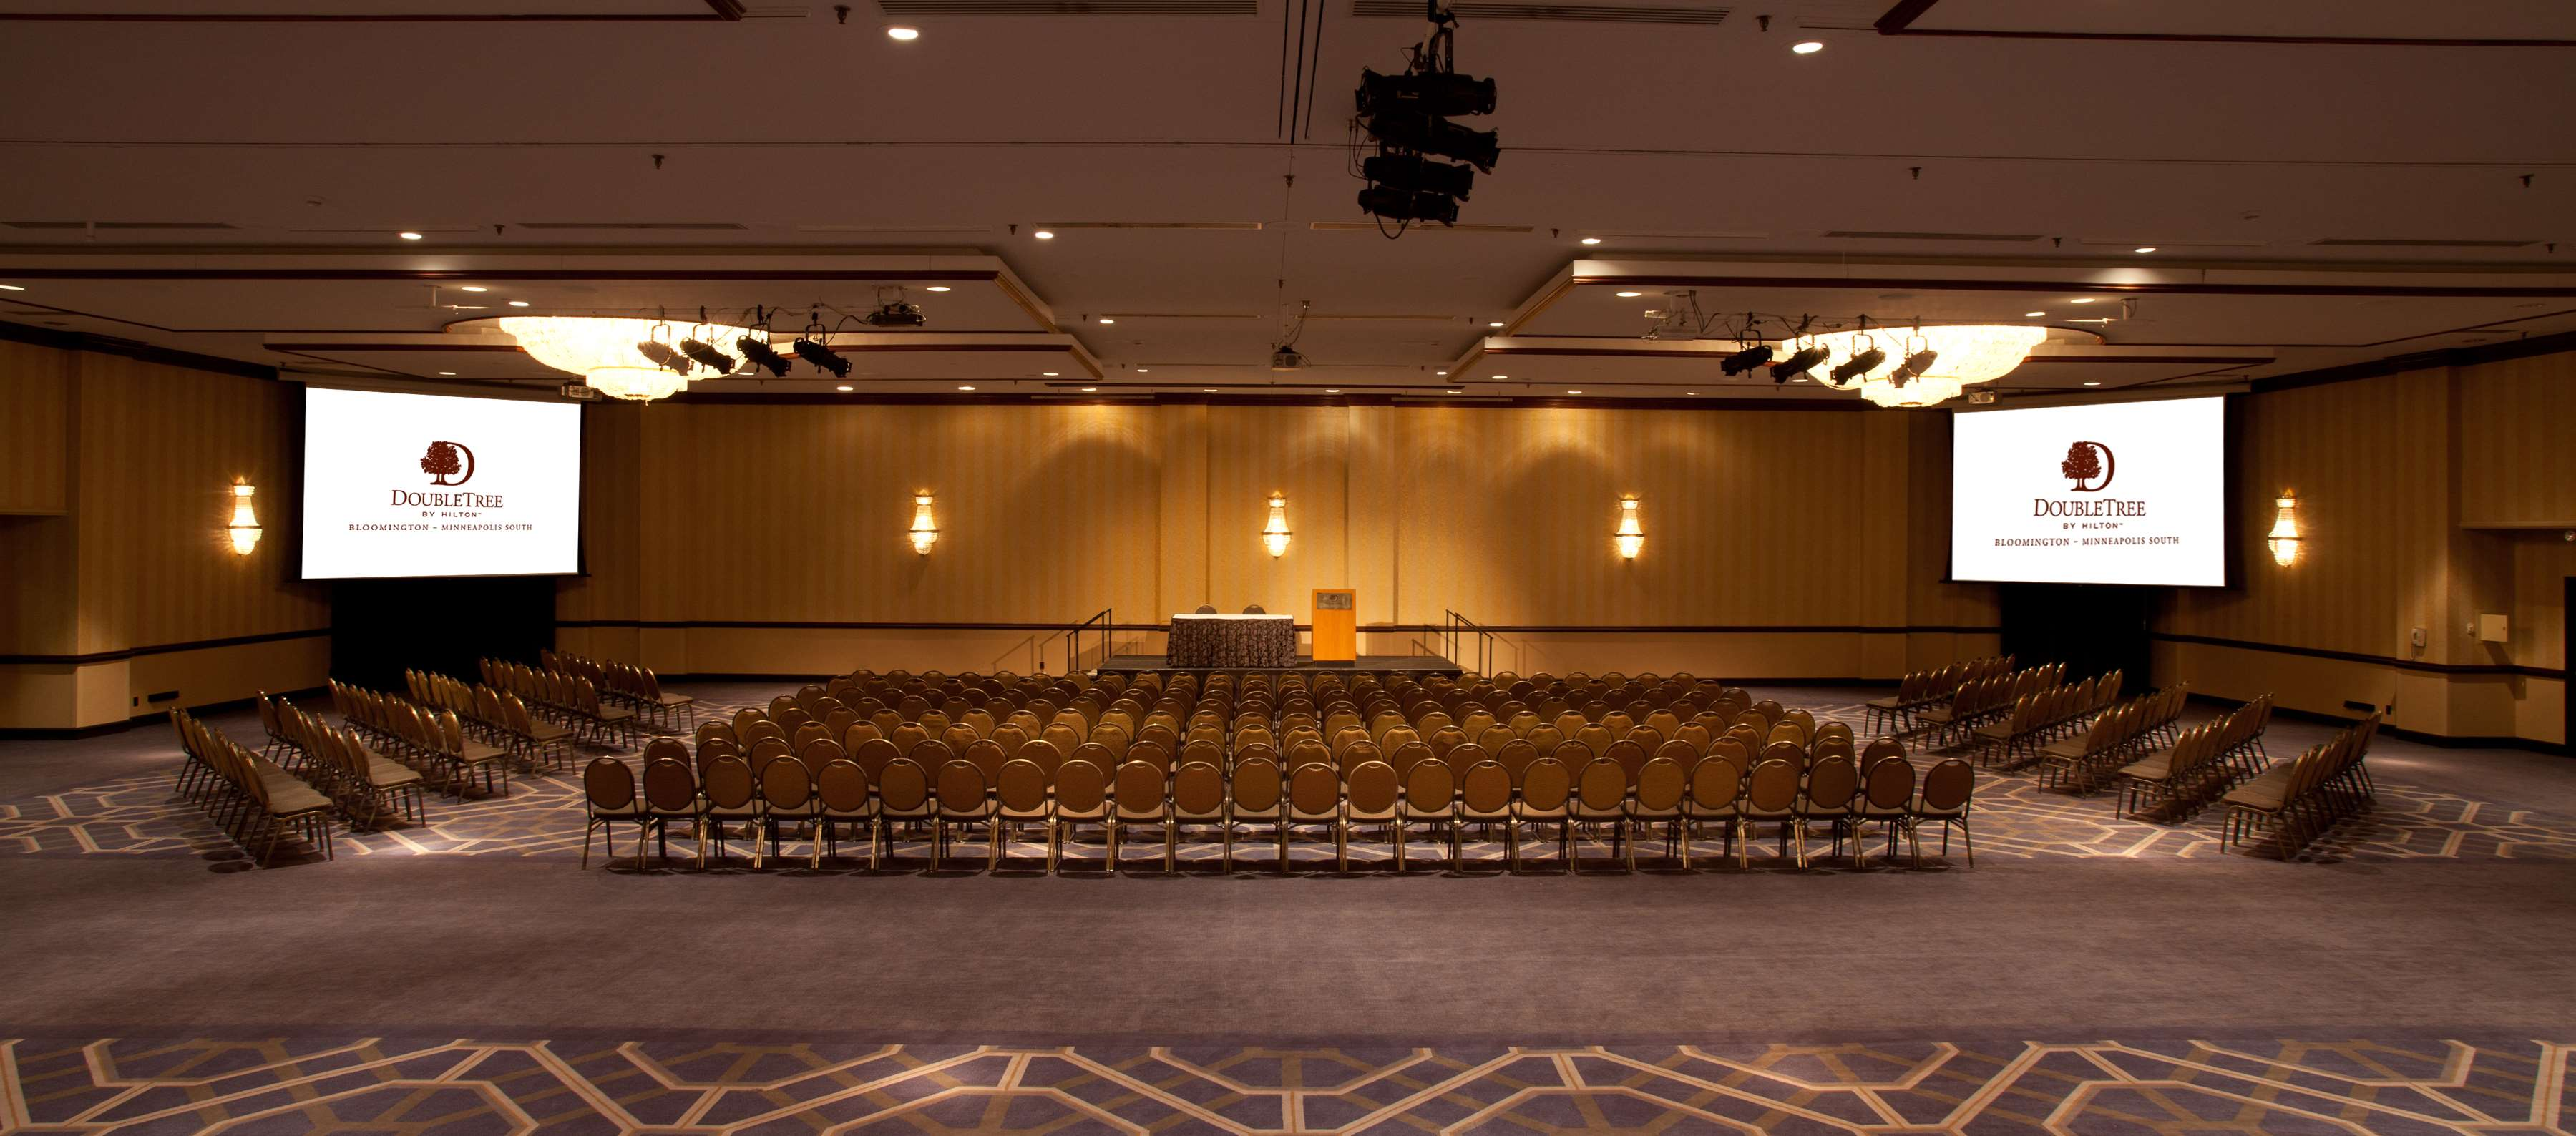 DoubleTree by Hilton Hotel Bloomington - Minneapolis South image 25